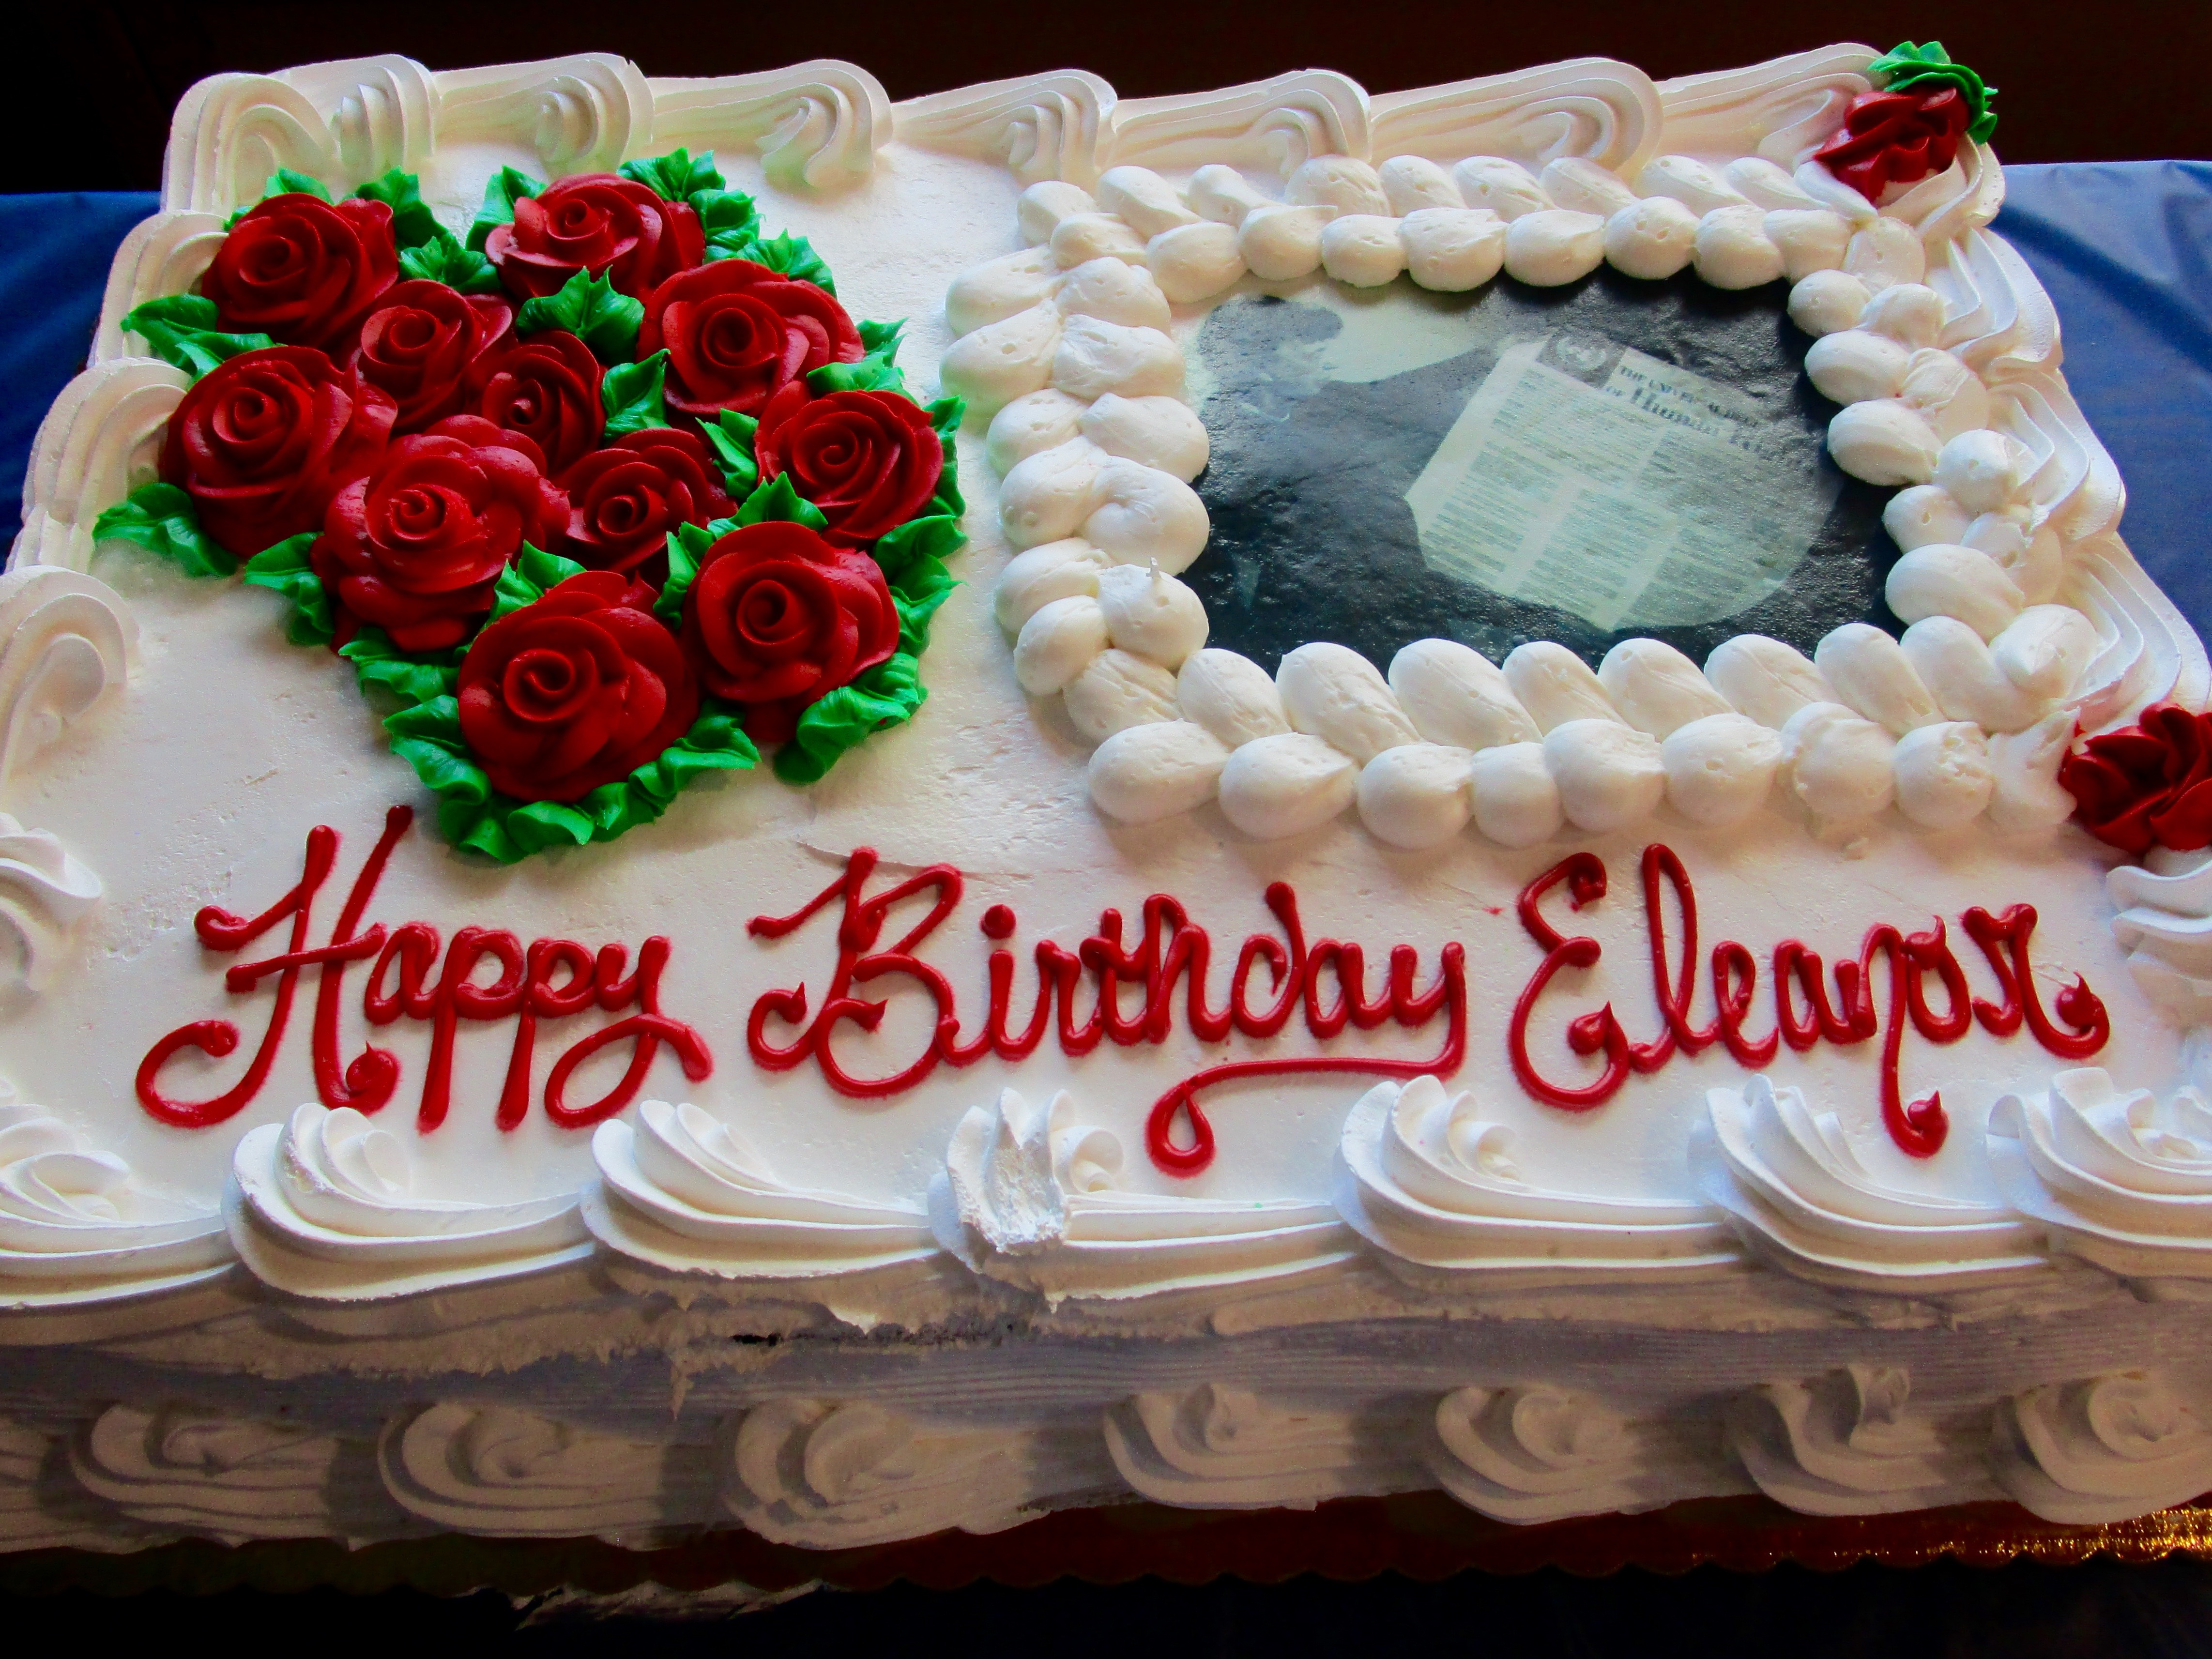 OCTOBER 11th WAS ELEANOR ROOSEVELT'S 131ST BIRTHDAY. WE PARTICIPATED IN A GRAVESIDE MEMORIAL CEREMONY AND THEN JOINED EVERYONE FOR A CELEBRATION AND BIRTHDAY CAKE.